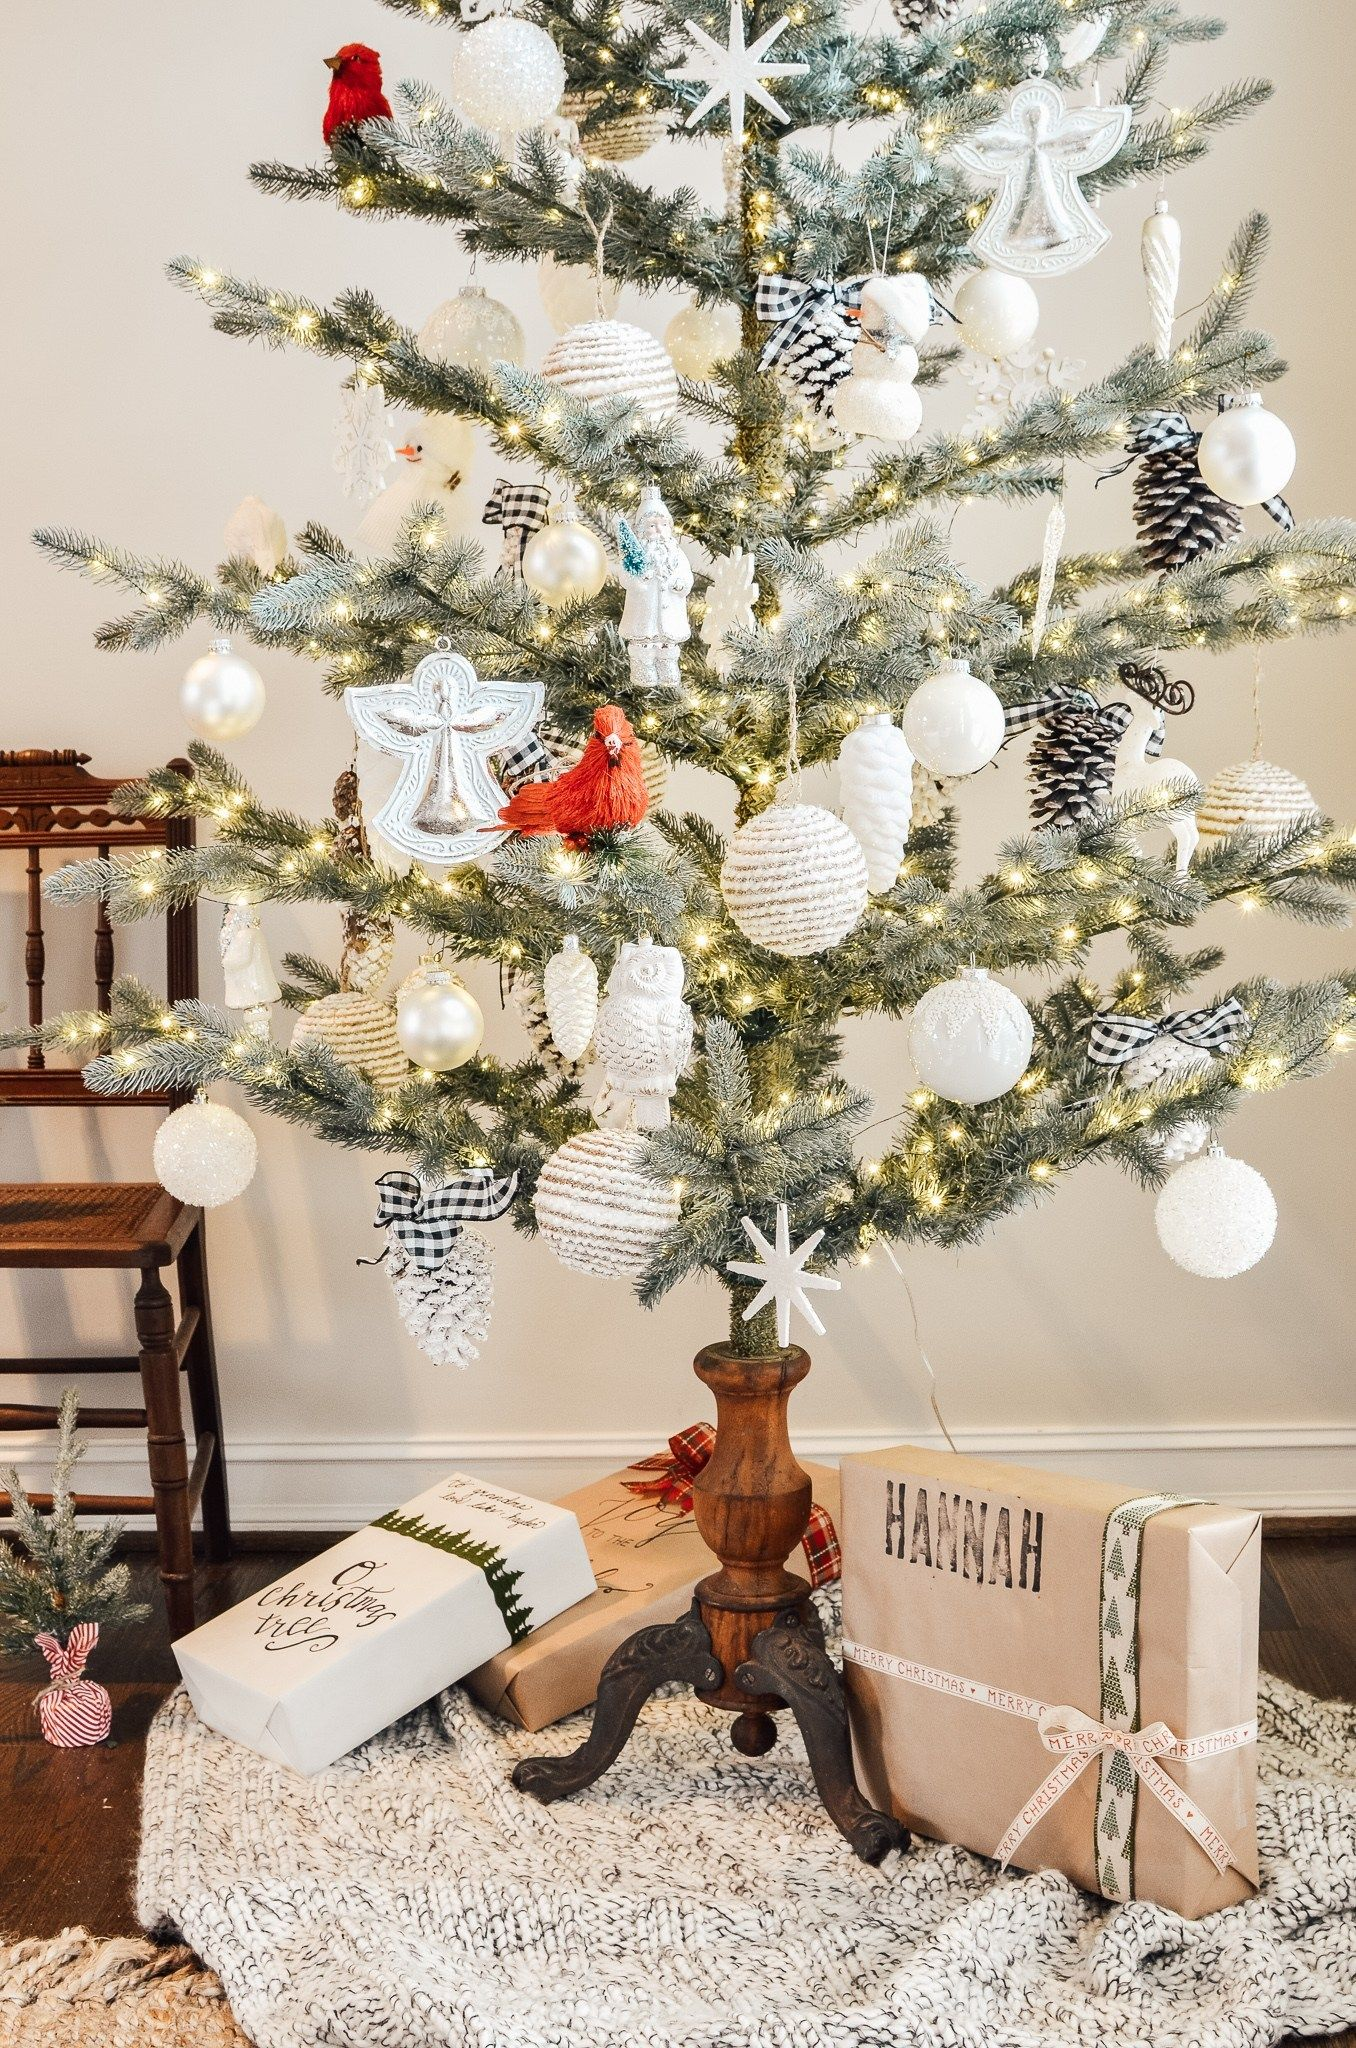 15+ Unique Christmas Tree Containers | Christmas tree container, Christmas tree inspiration ...